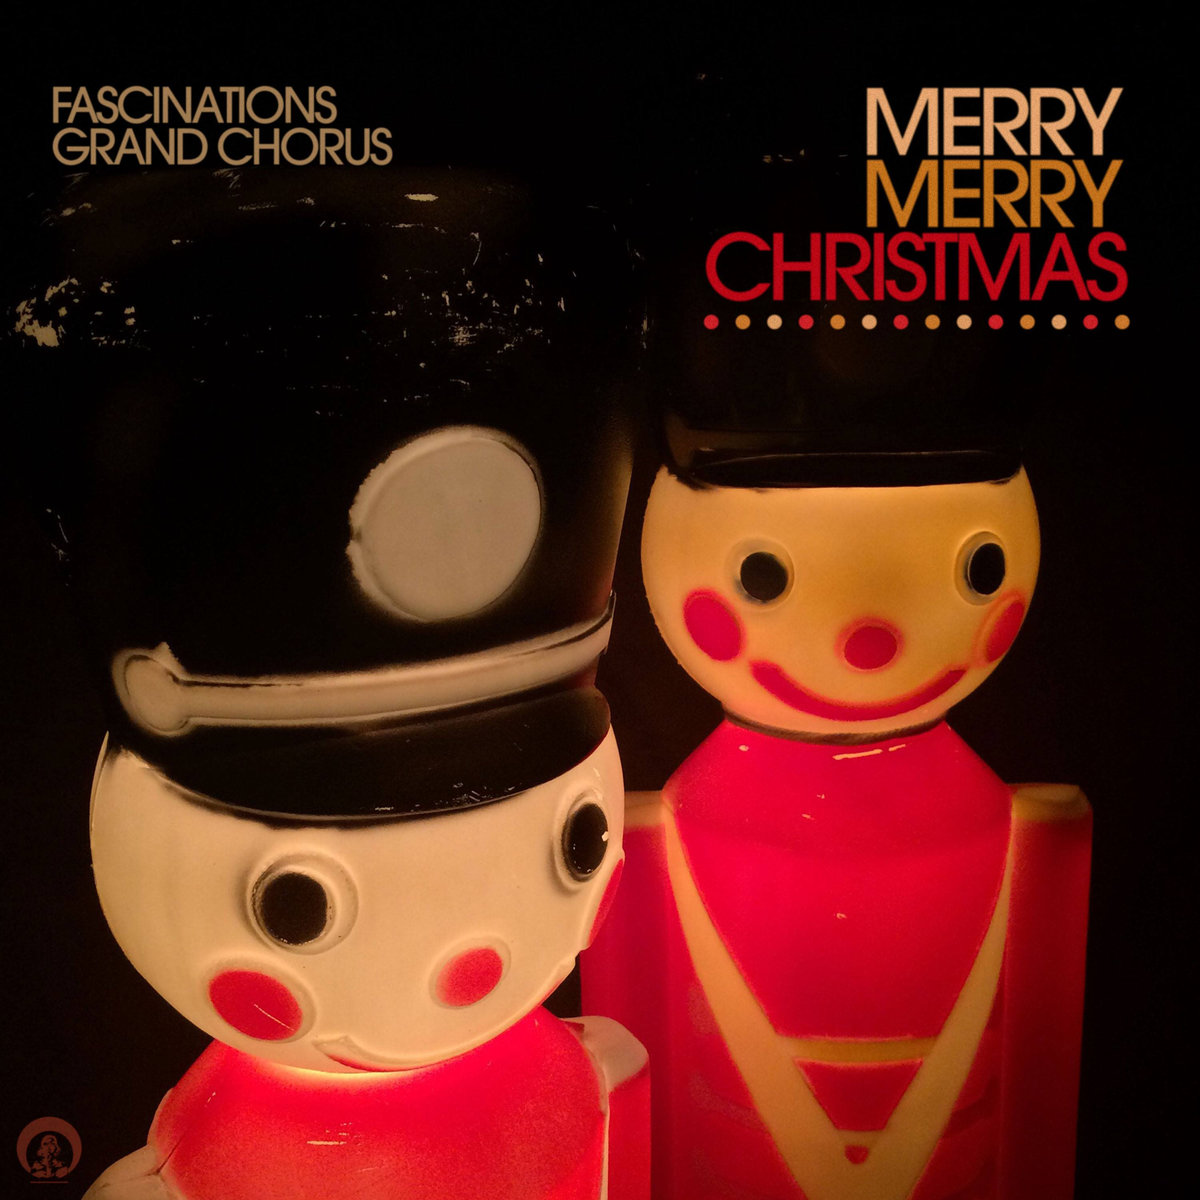 Fascinations Grand Chorus - Merry, Merry Christmas